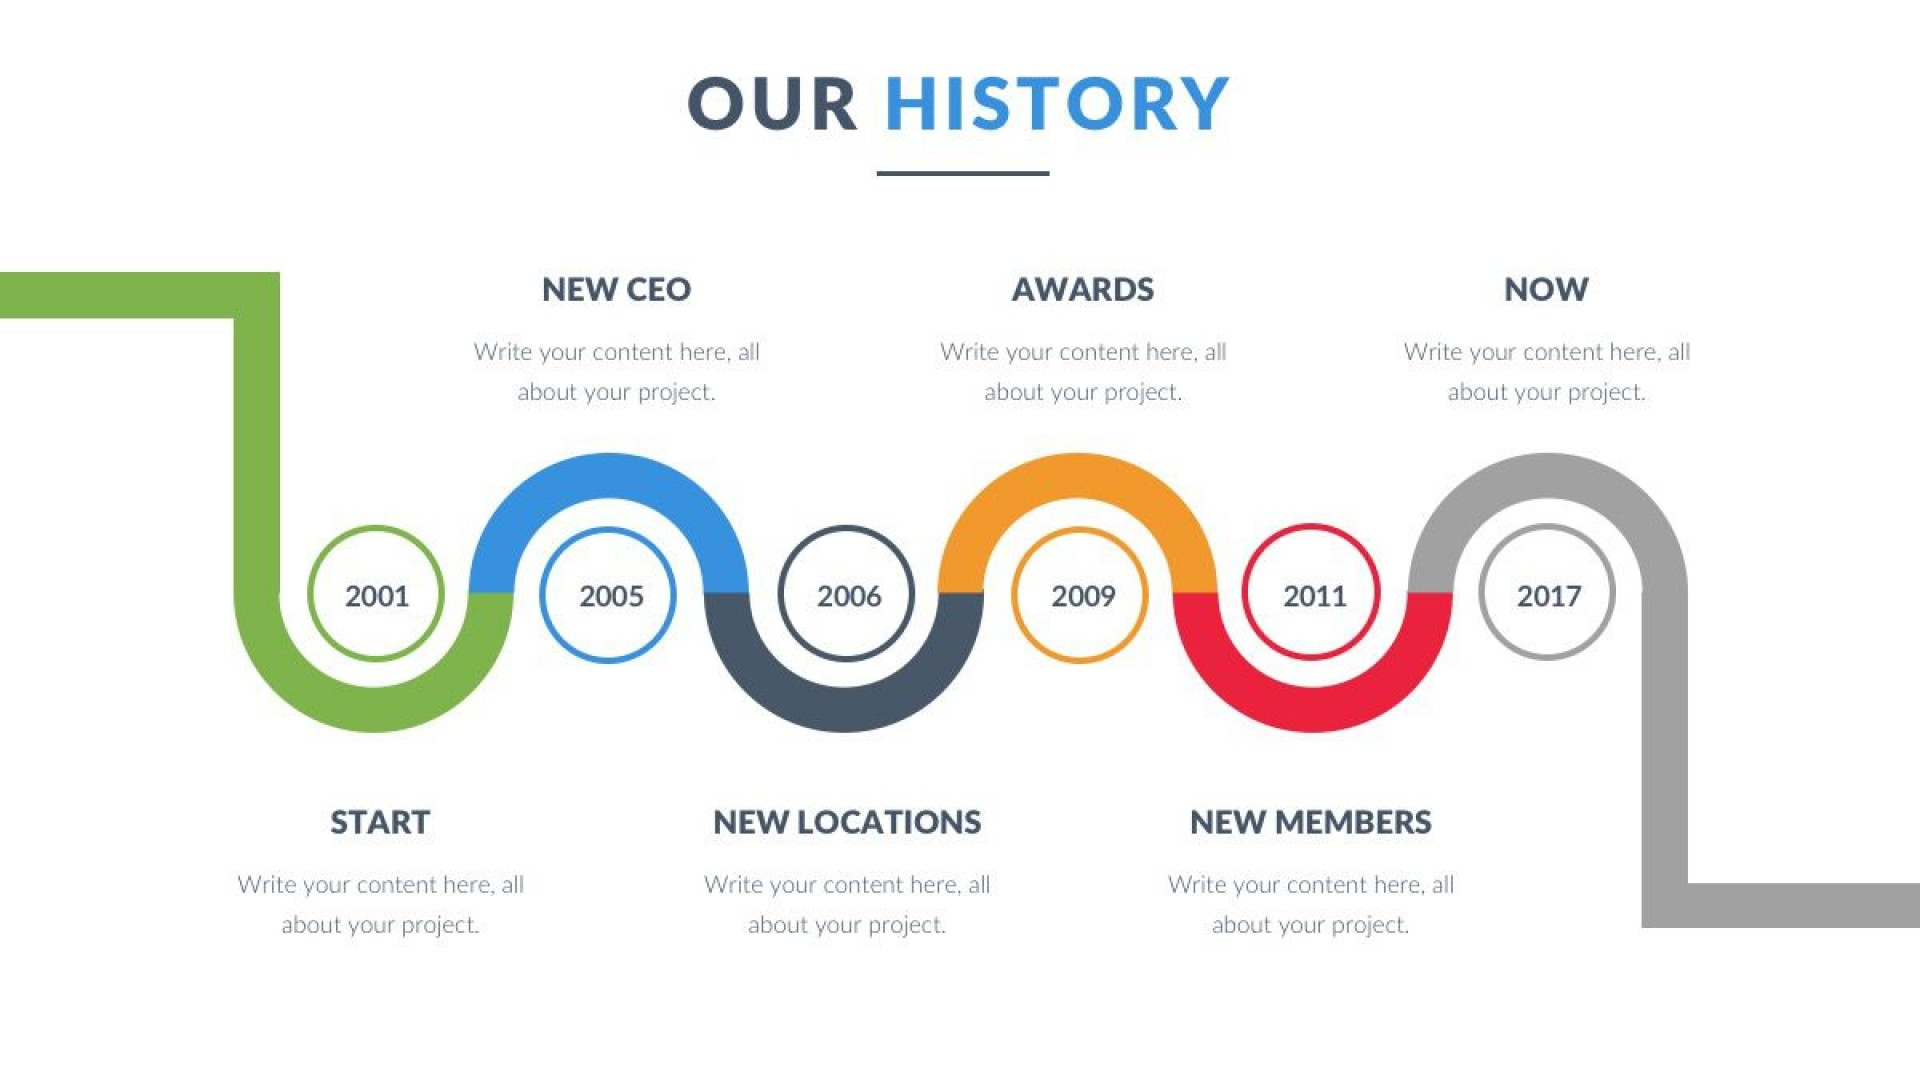 009 Awful Powerpoint Timeline Template Free Download Highest Clarity  Project History1920